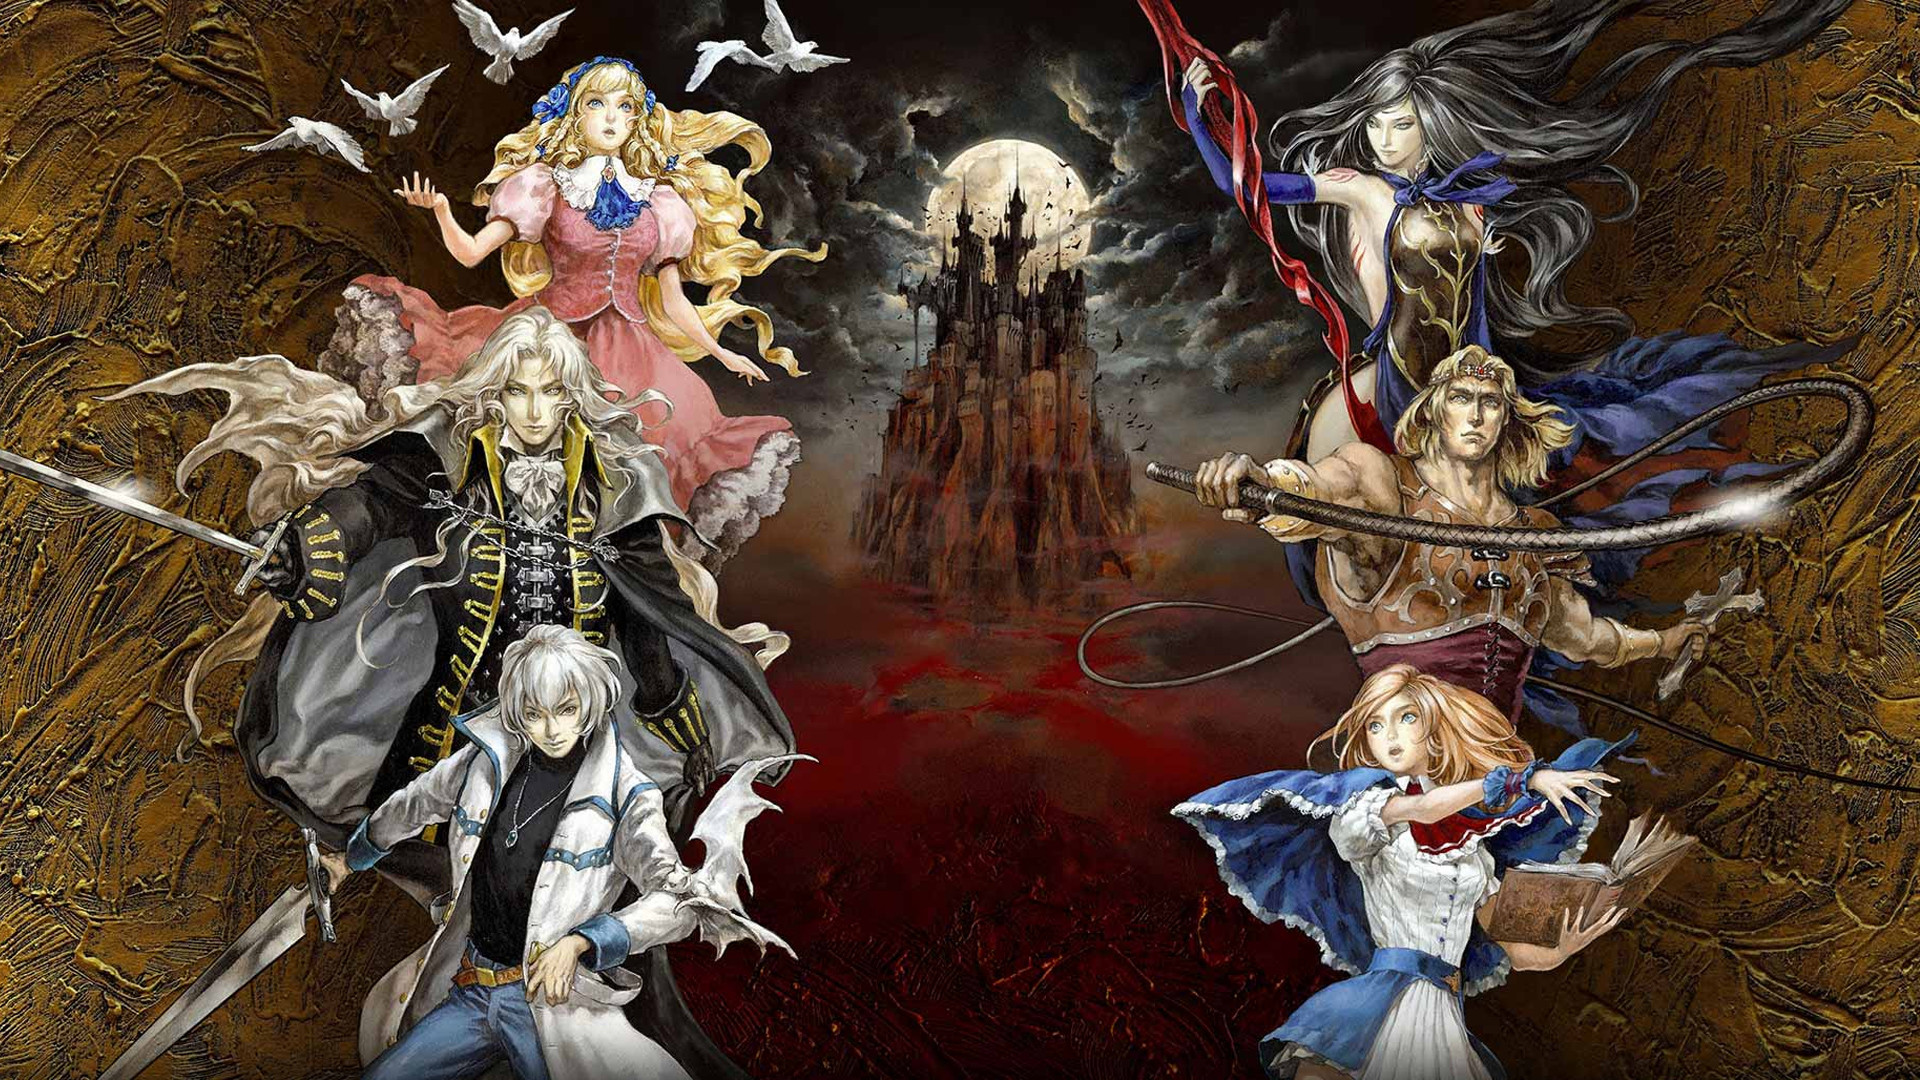 Res: 1920x1080, Wallpaper from Castlevania: Grimoire of Souls